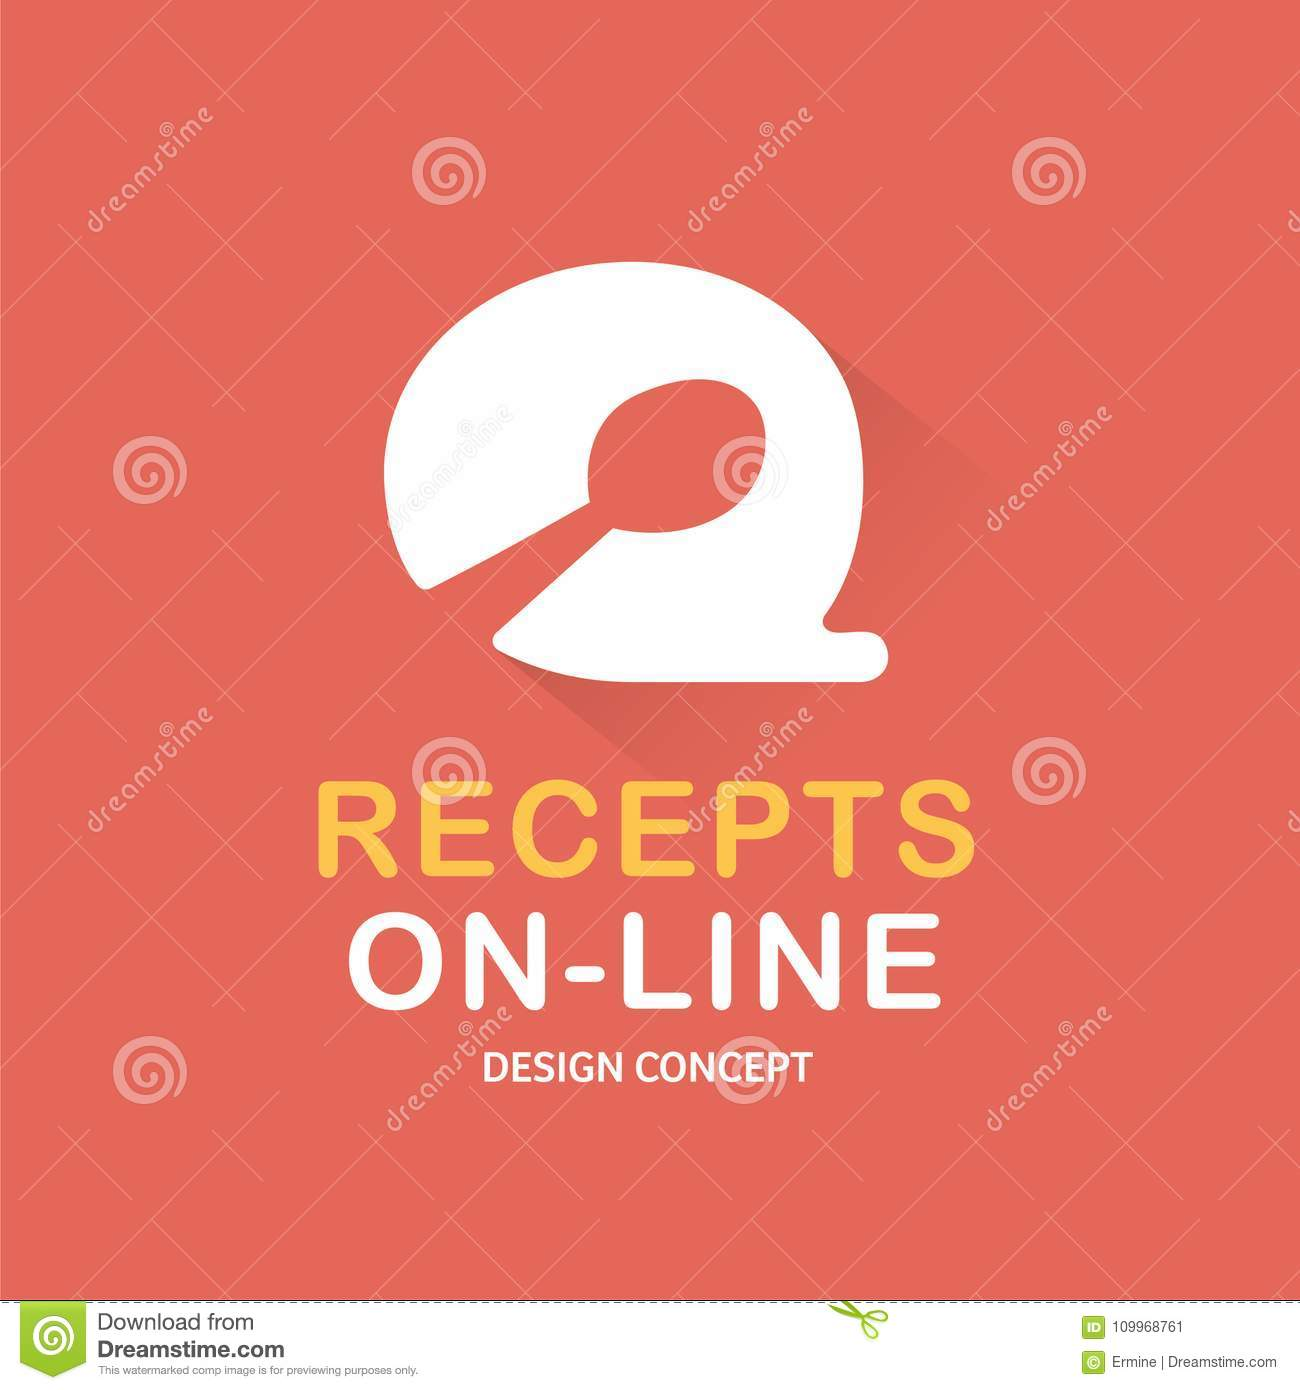 Recipes on line food logo cooking logo bubble logo te stock download recipes on line food logo cooking logo bubble logo te forumfinder Choice Image